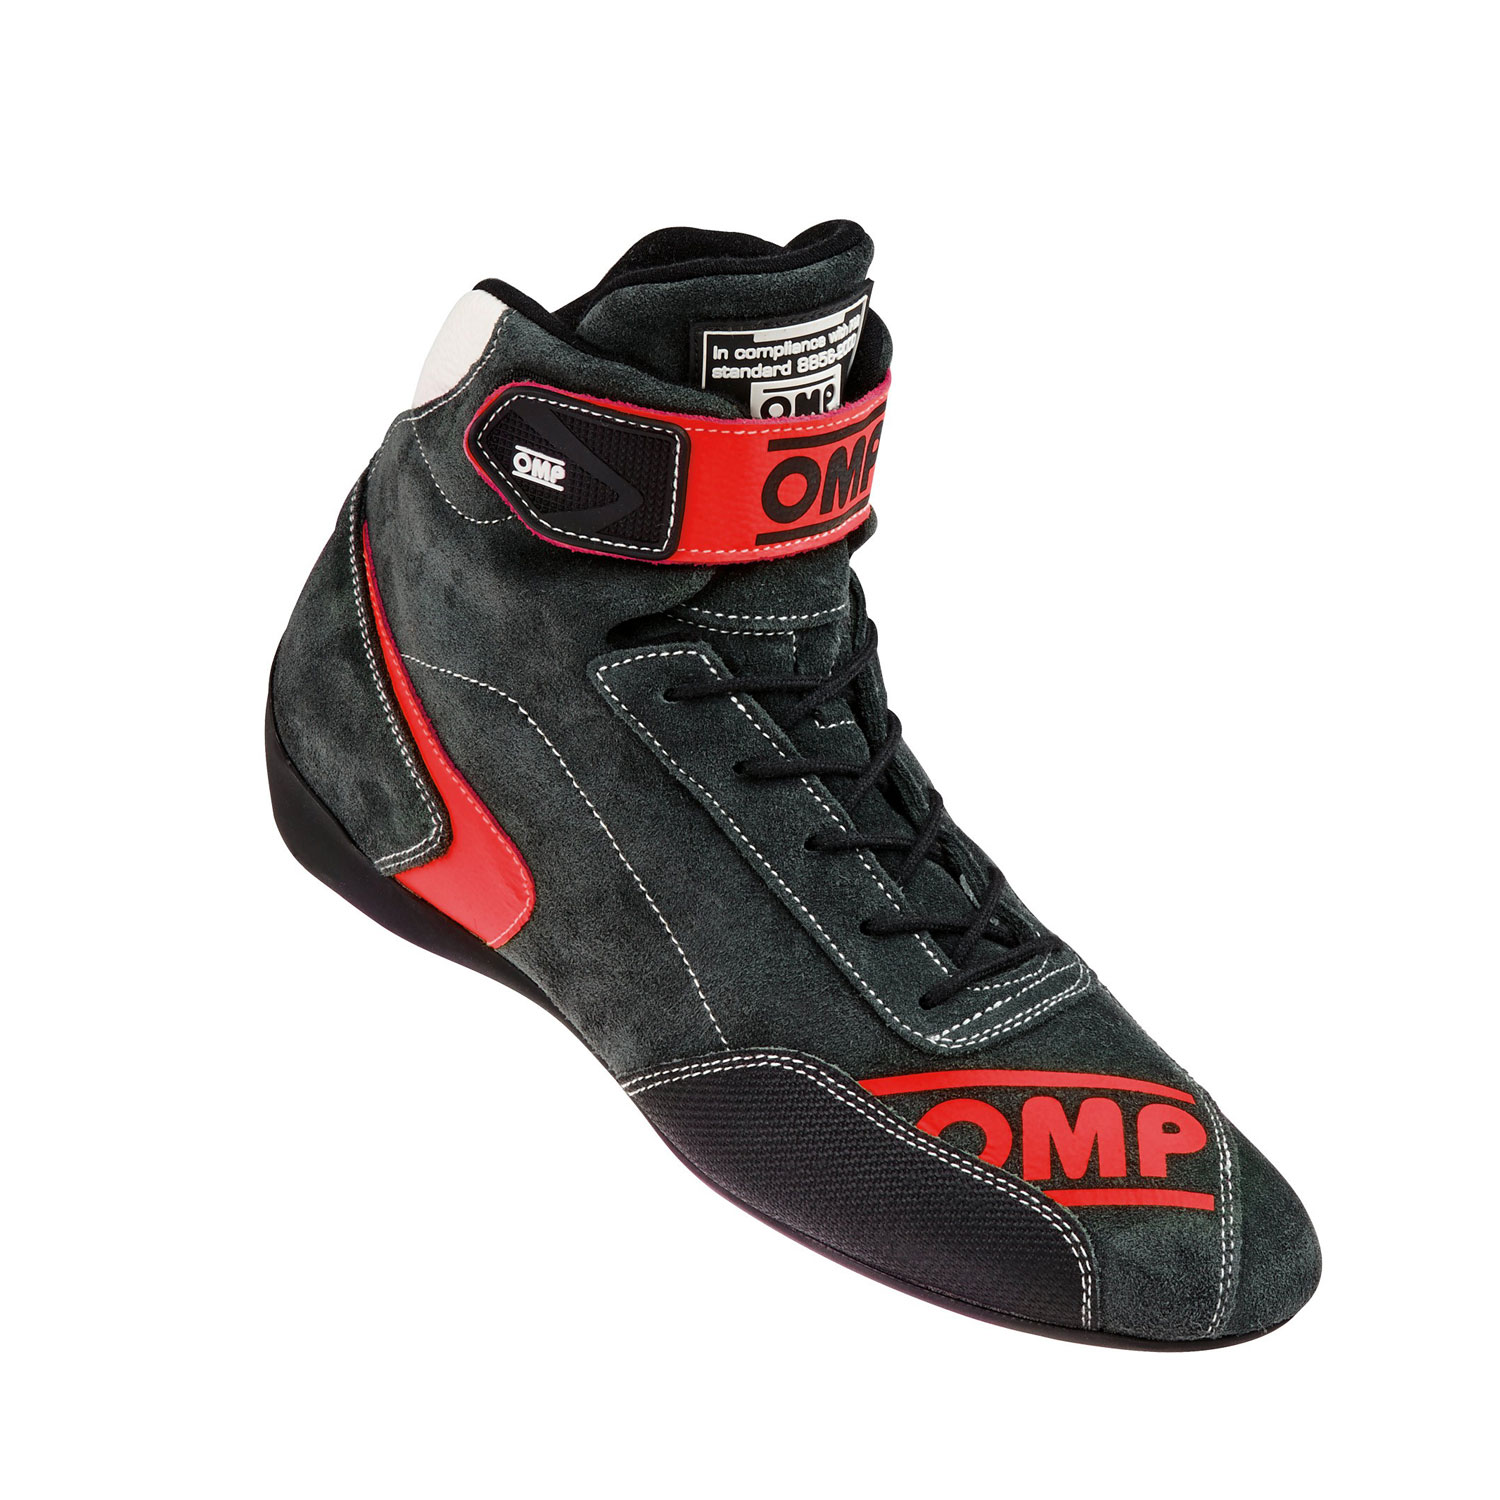 OMP IC//80306141 Tecnica Evo Shoes, Red, Size 41